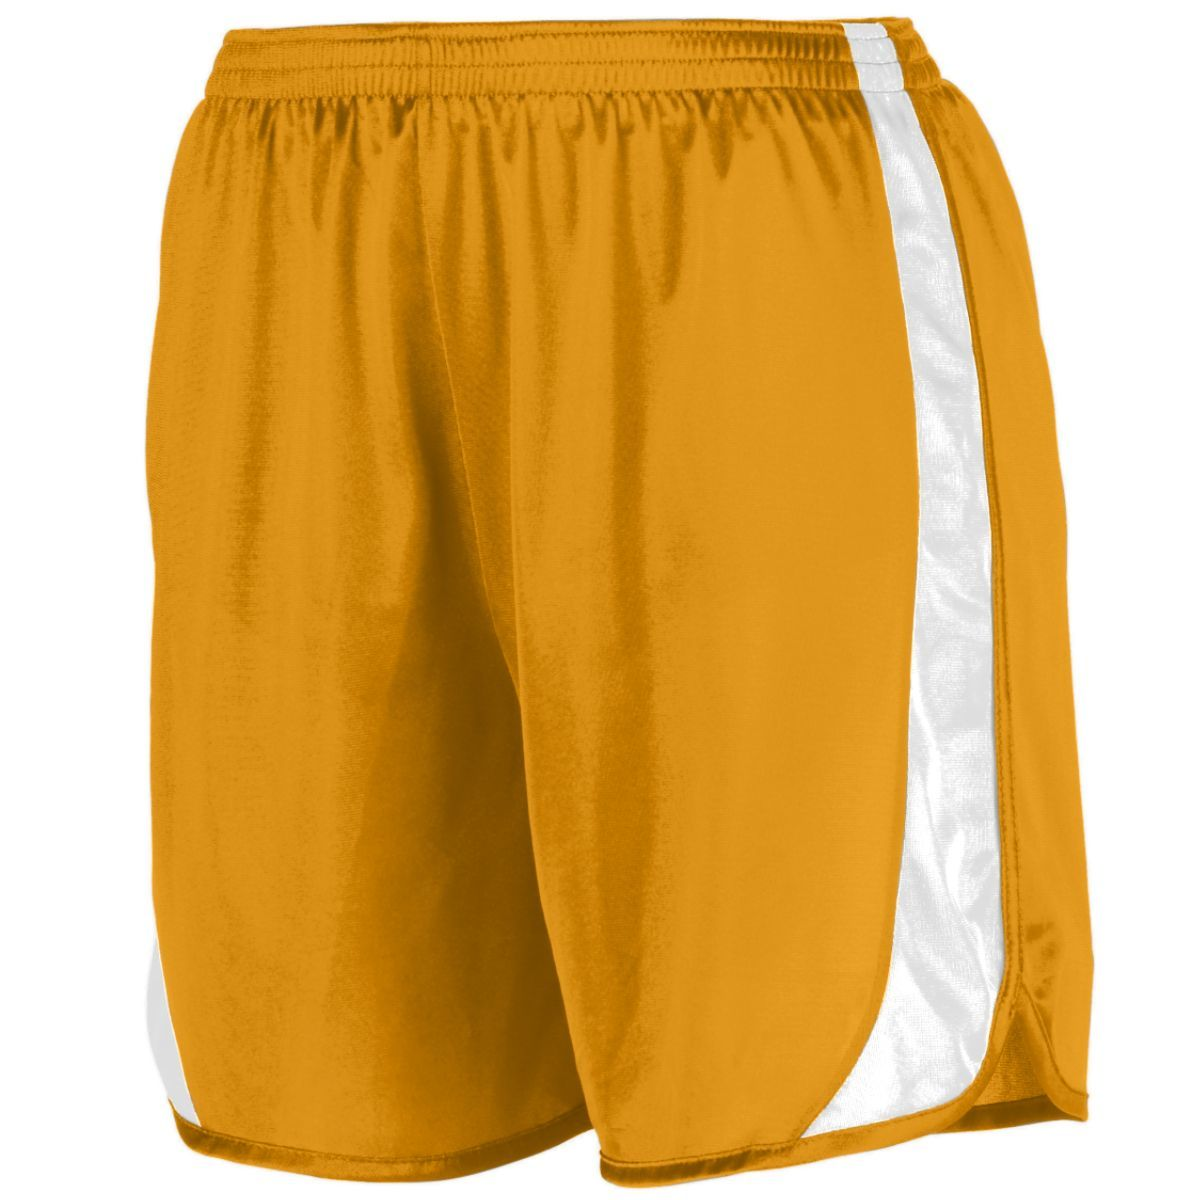 Youth Wicking Track Shorts With Side Insert - GOLD/WHITE